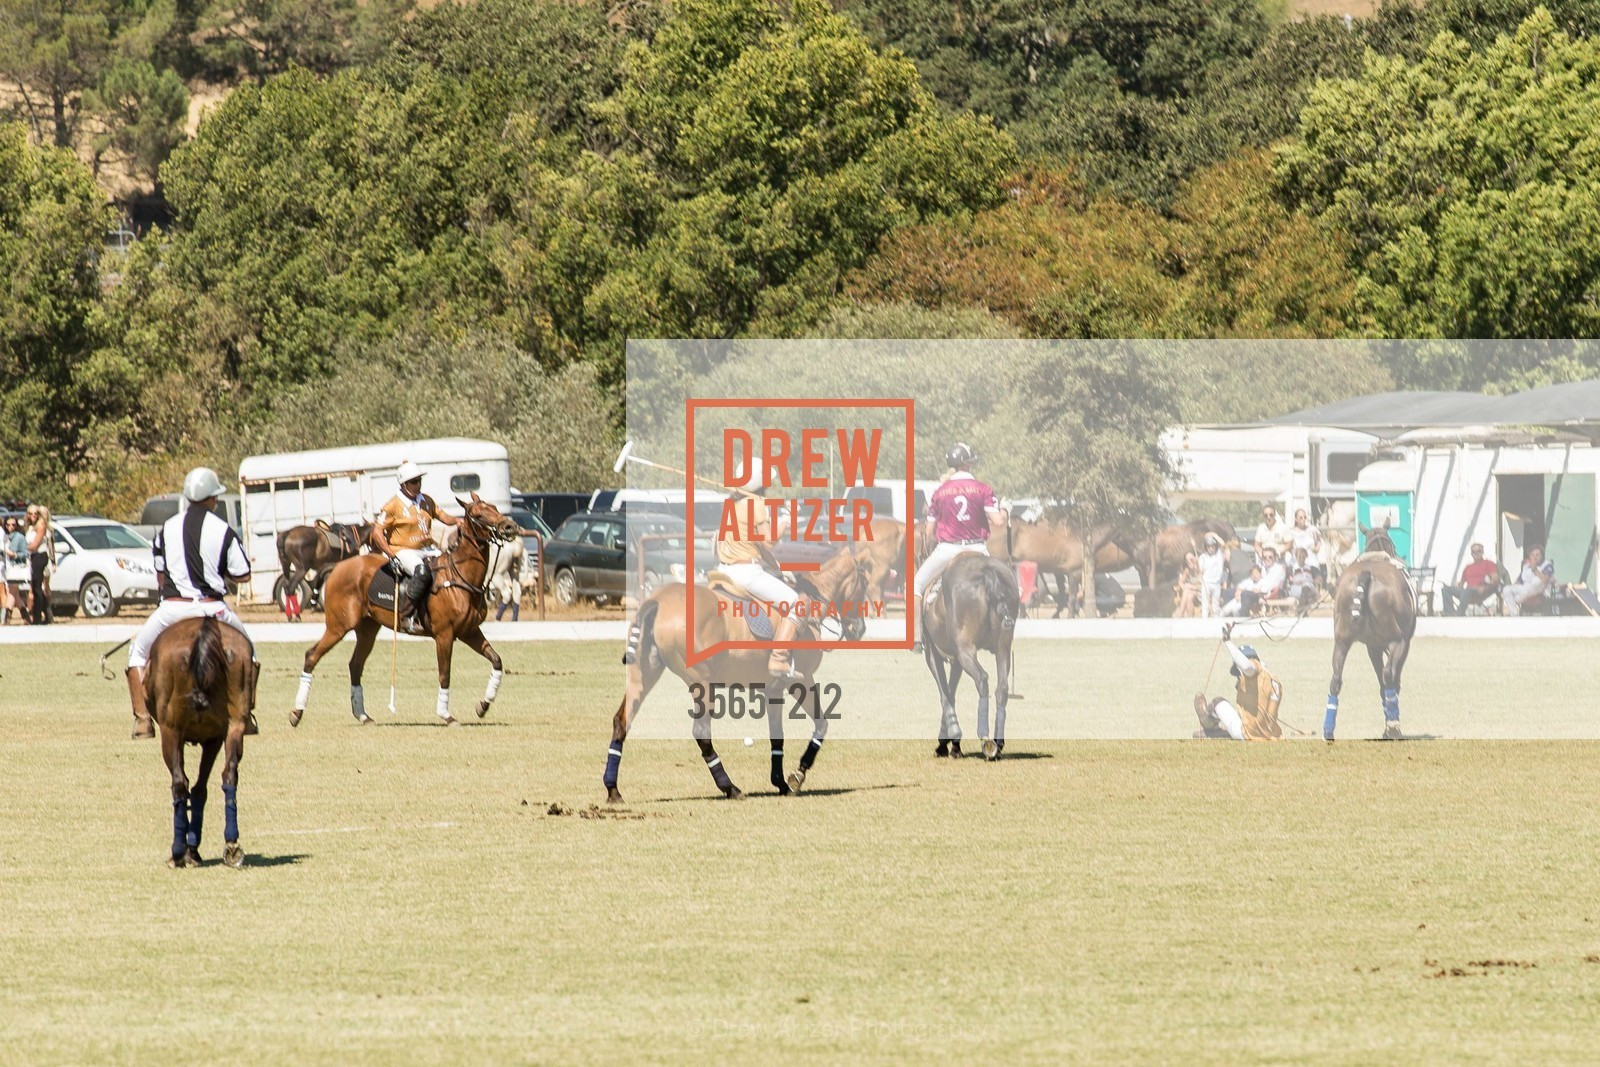 Polo Match, Photo #3565-212